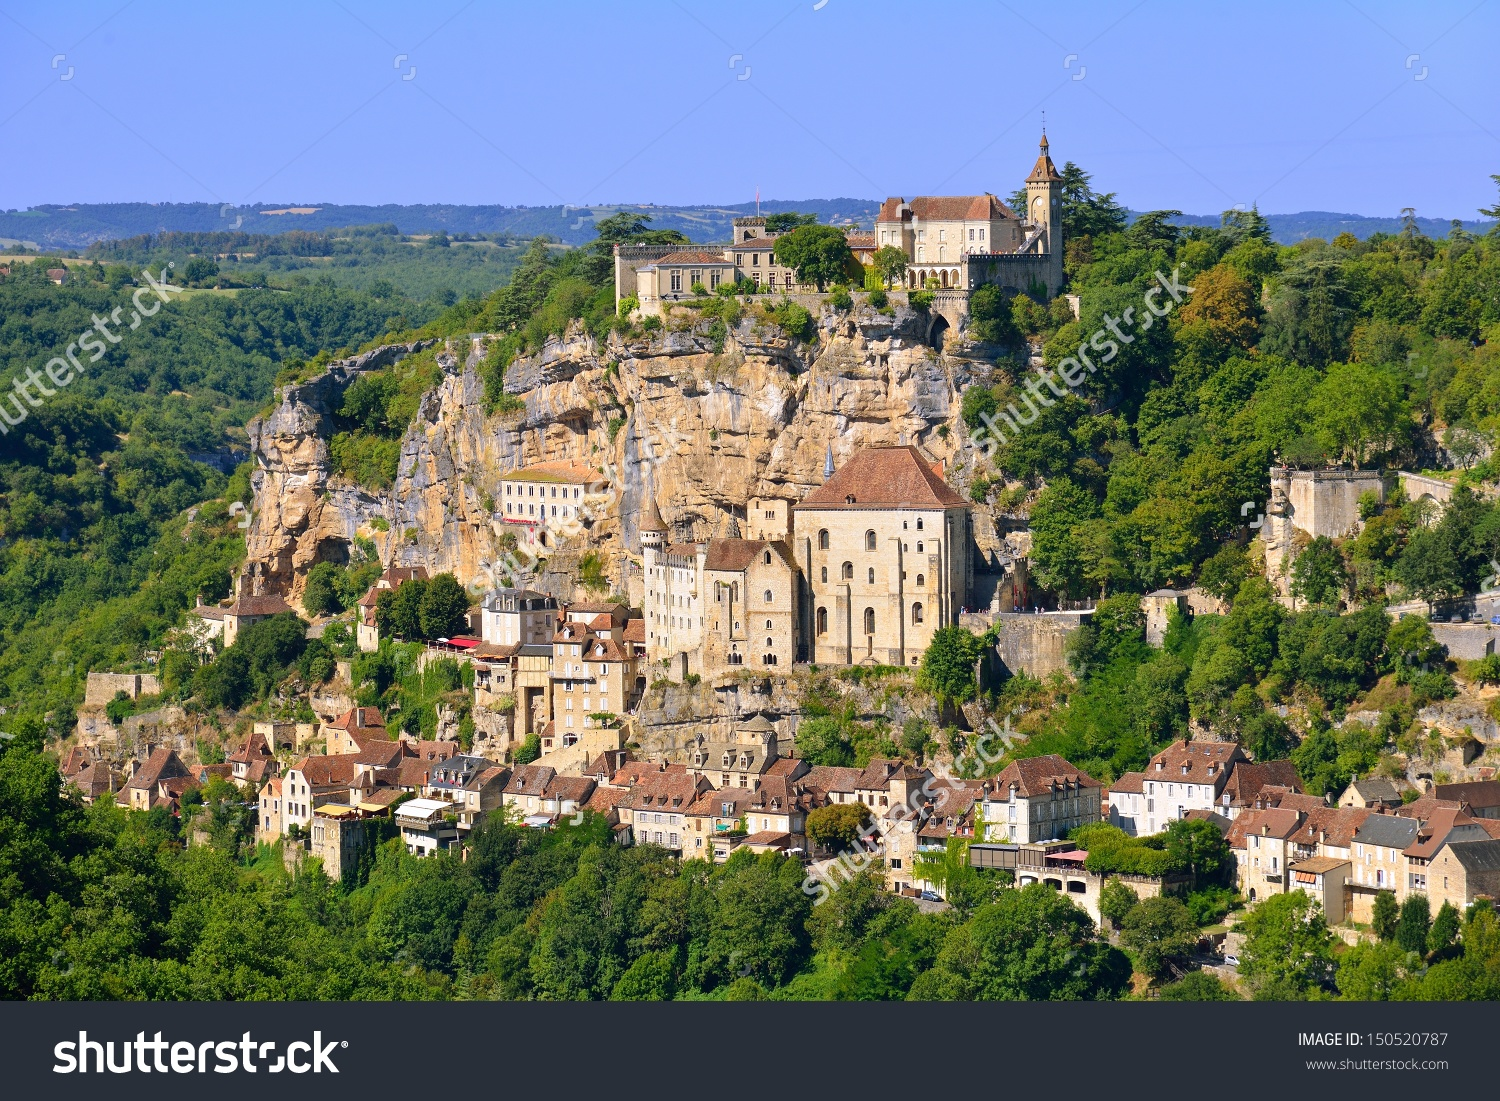 Rocamadour Beautiful French Village On Cliff Stock Photo 150520787.